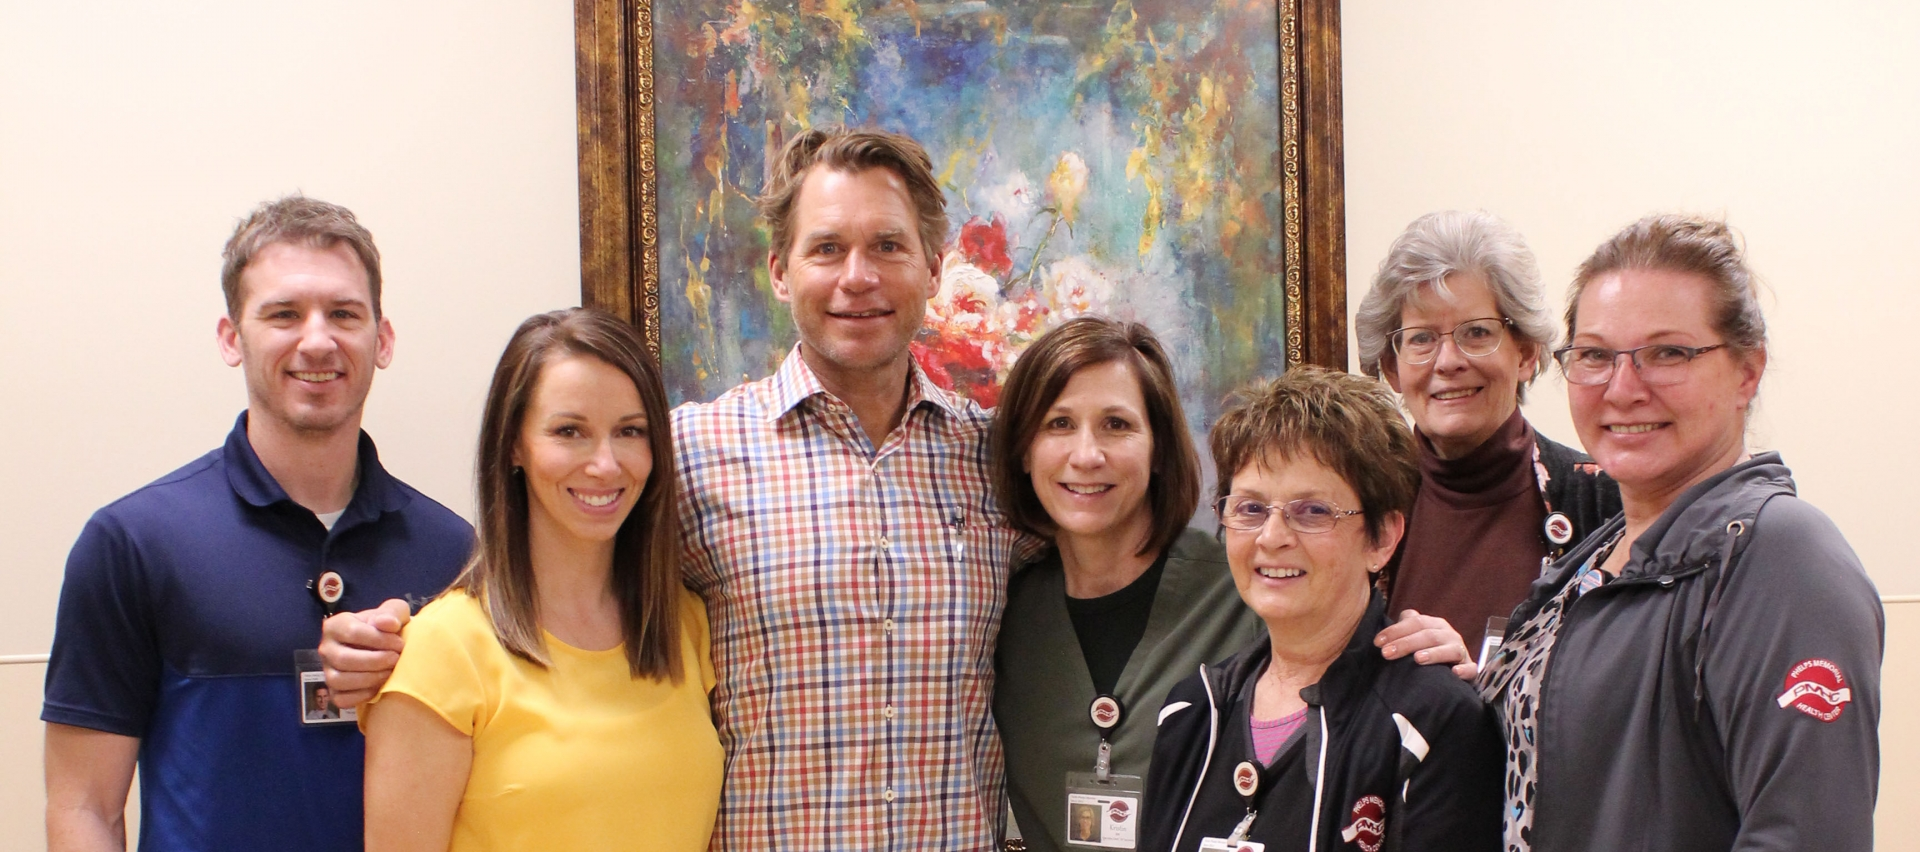 Dr. Andreas Sauerbrey and Phelps Memorial orthopedics clinic team in Holdrege Nebraska